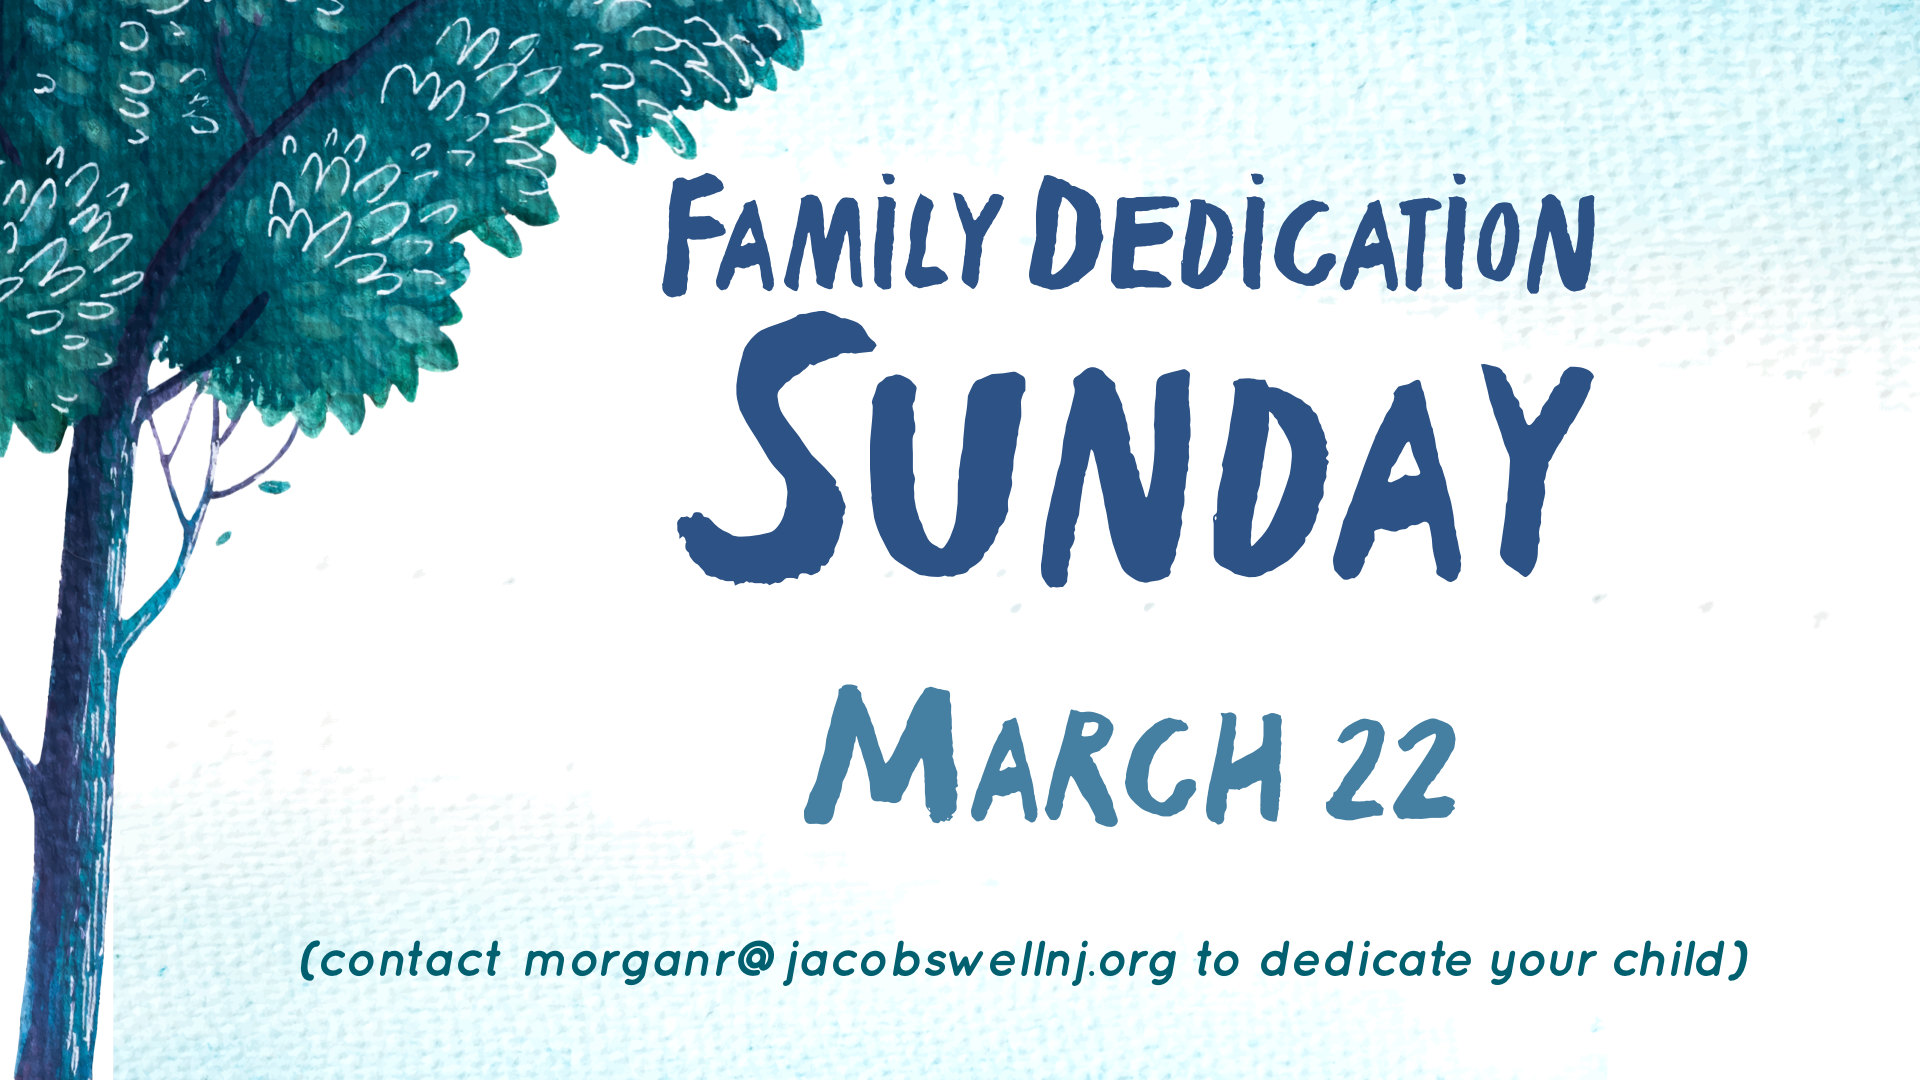 Family Dedication March 22 GS image